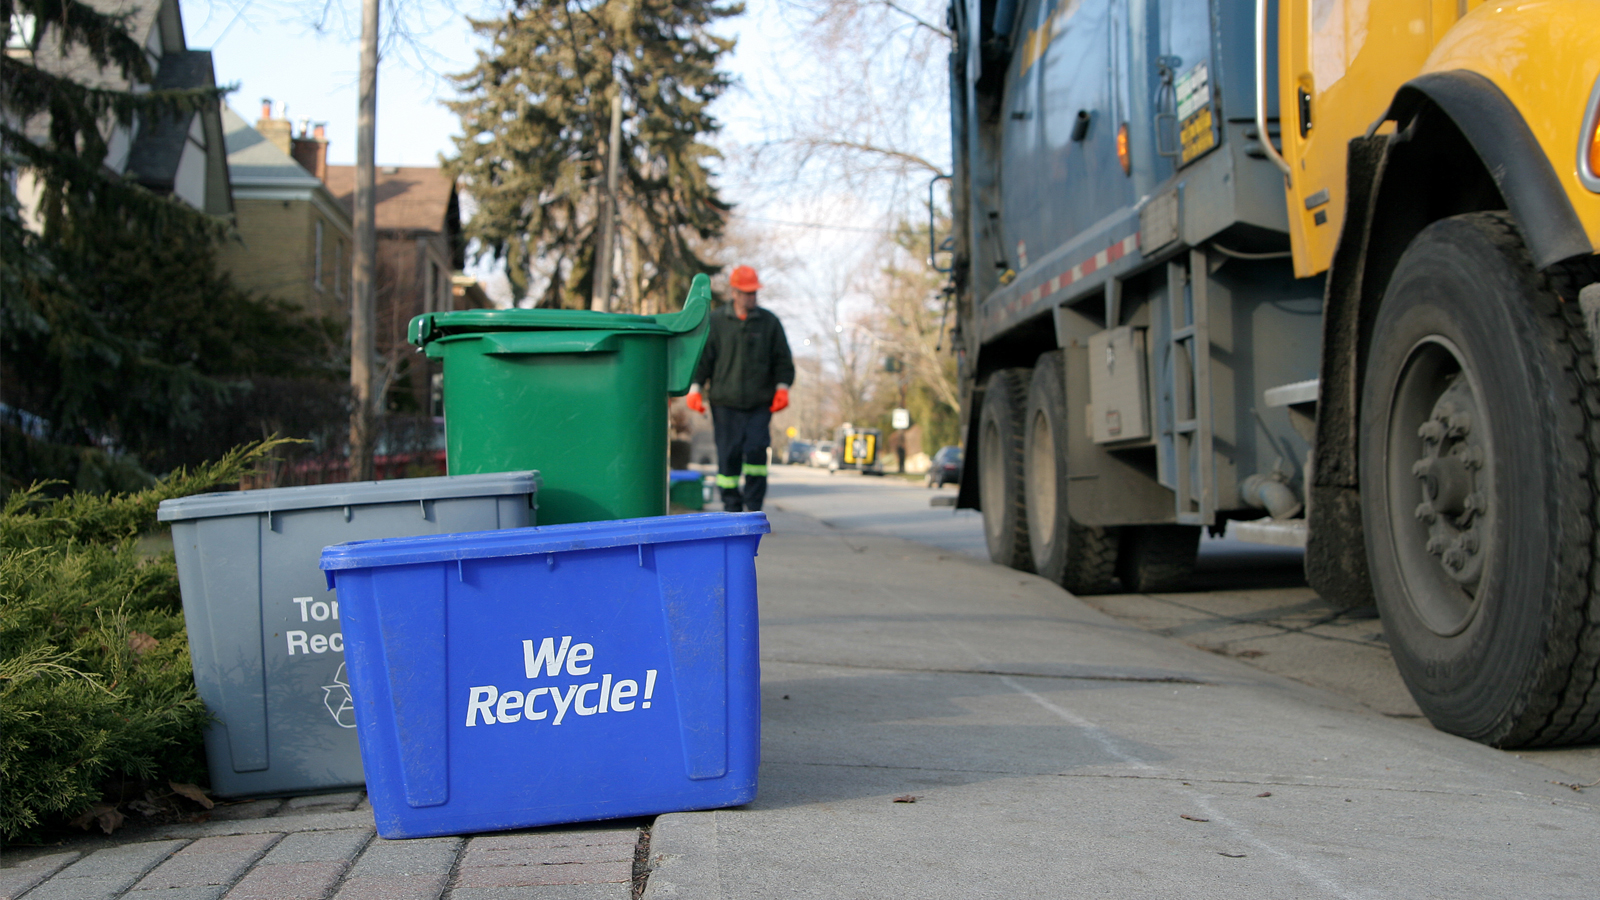 10 Tips to Recycle More Every Day